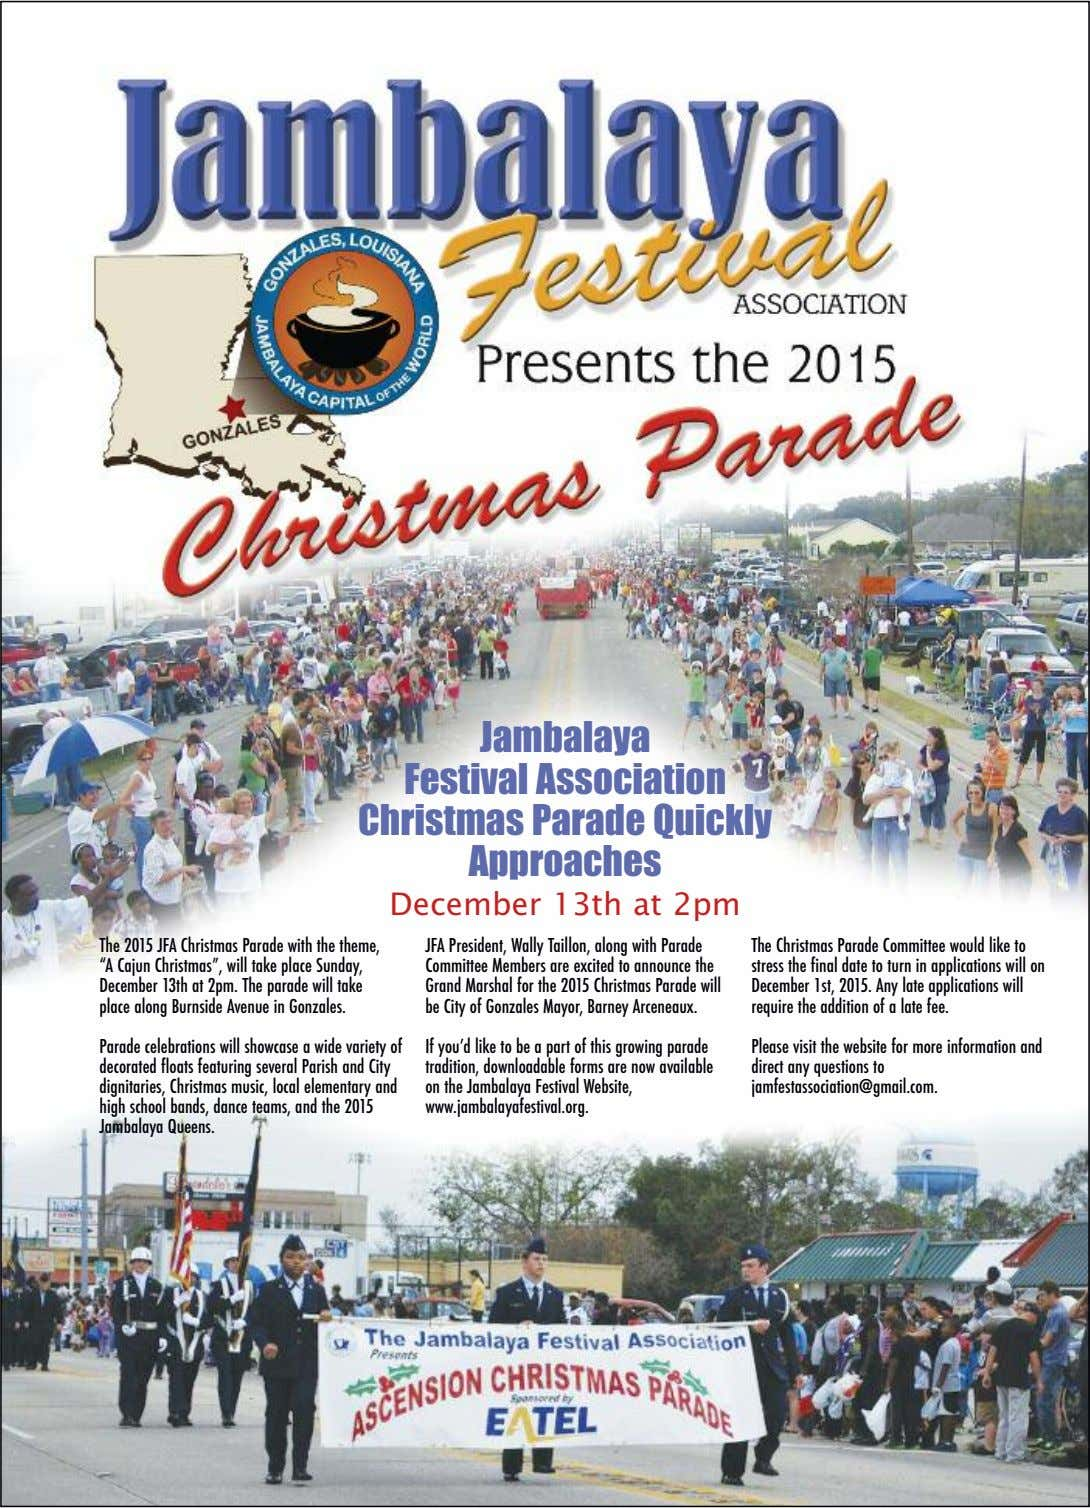 Jambalaya Festival Association Christmas Parade Quickly Approaches December 13th at 2pm The 2015 JFA Christmas